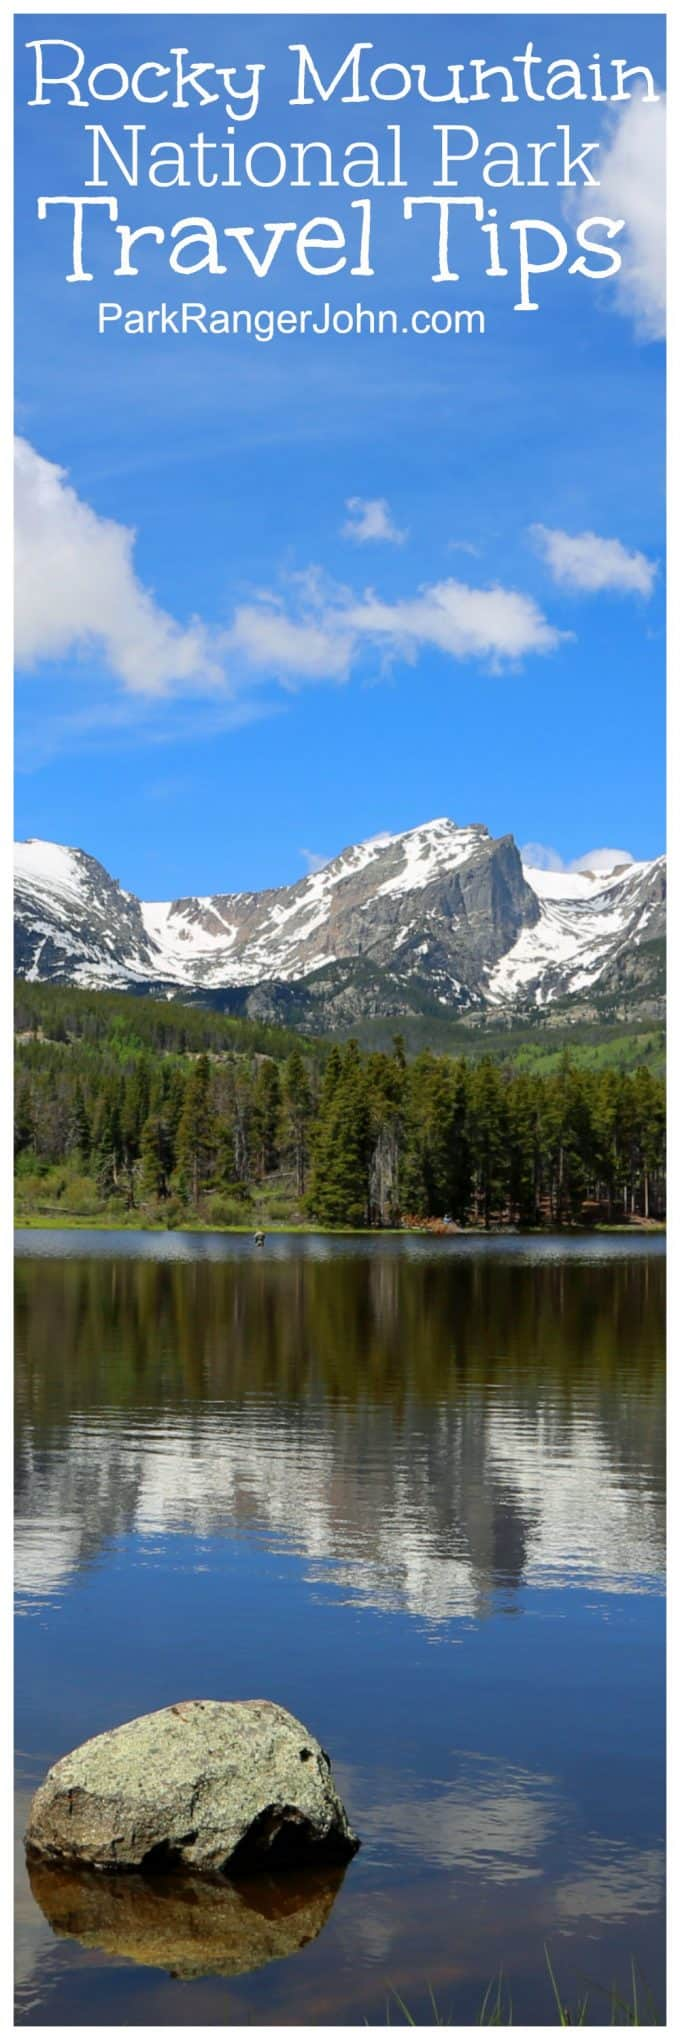 Rocky Mountain National Park Travel Tips! Hiking, Summer, Fall, Winter, what to pack for Colorado and more!